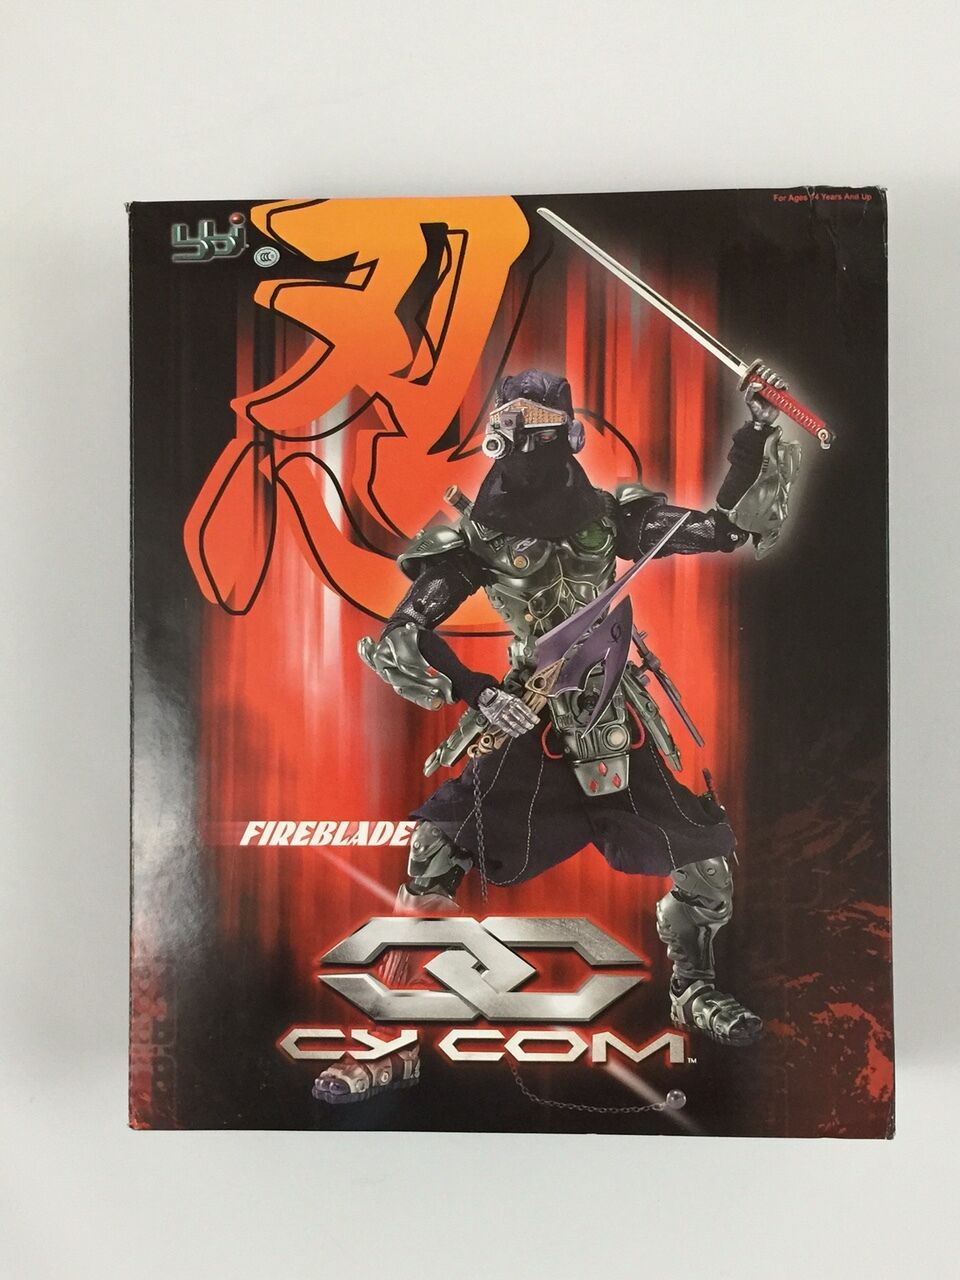 CY Com Fireblade Action Figure 1 6th Scale by BBI